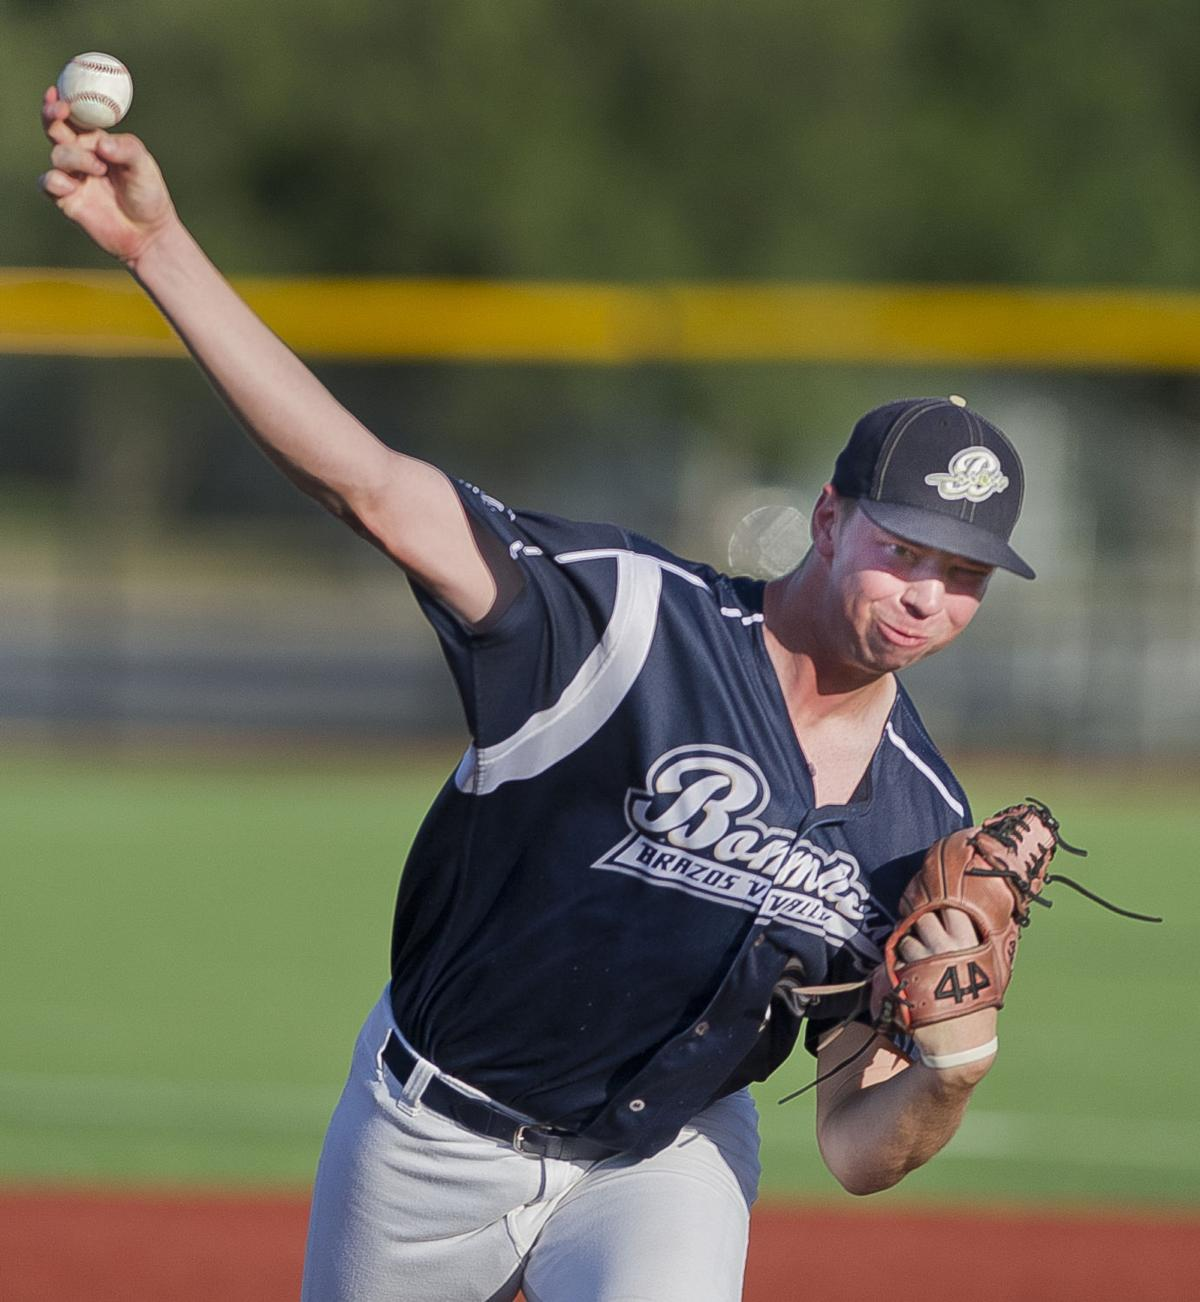 Bombers Lose To Marshals Thanks To Late Rally Brazos